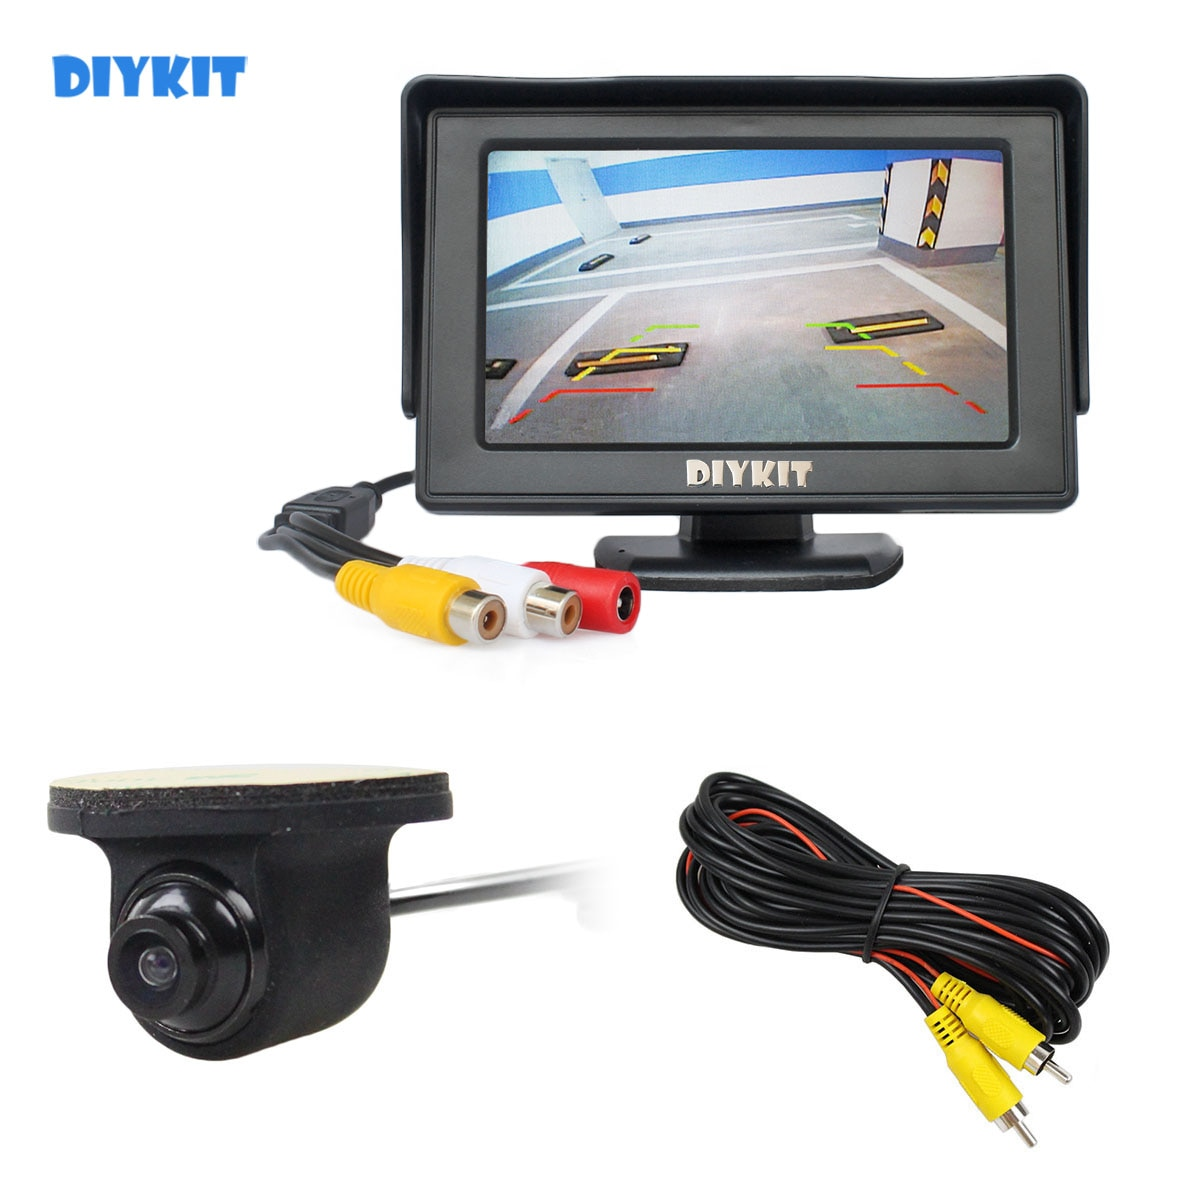 DIYKIT Wlred 4.3 Inch TFT LCD Car Monitor + Waterproof Rear View Car Camera for Rear / Front / Side View